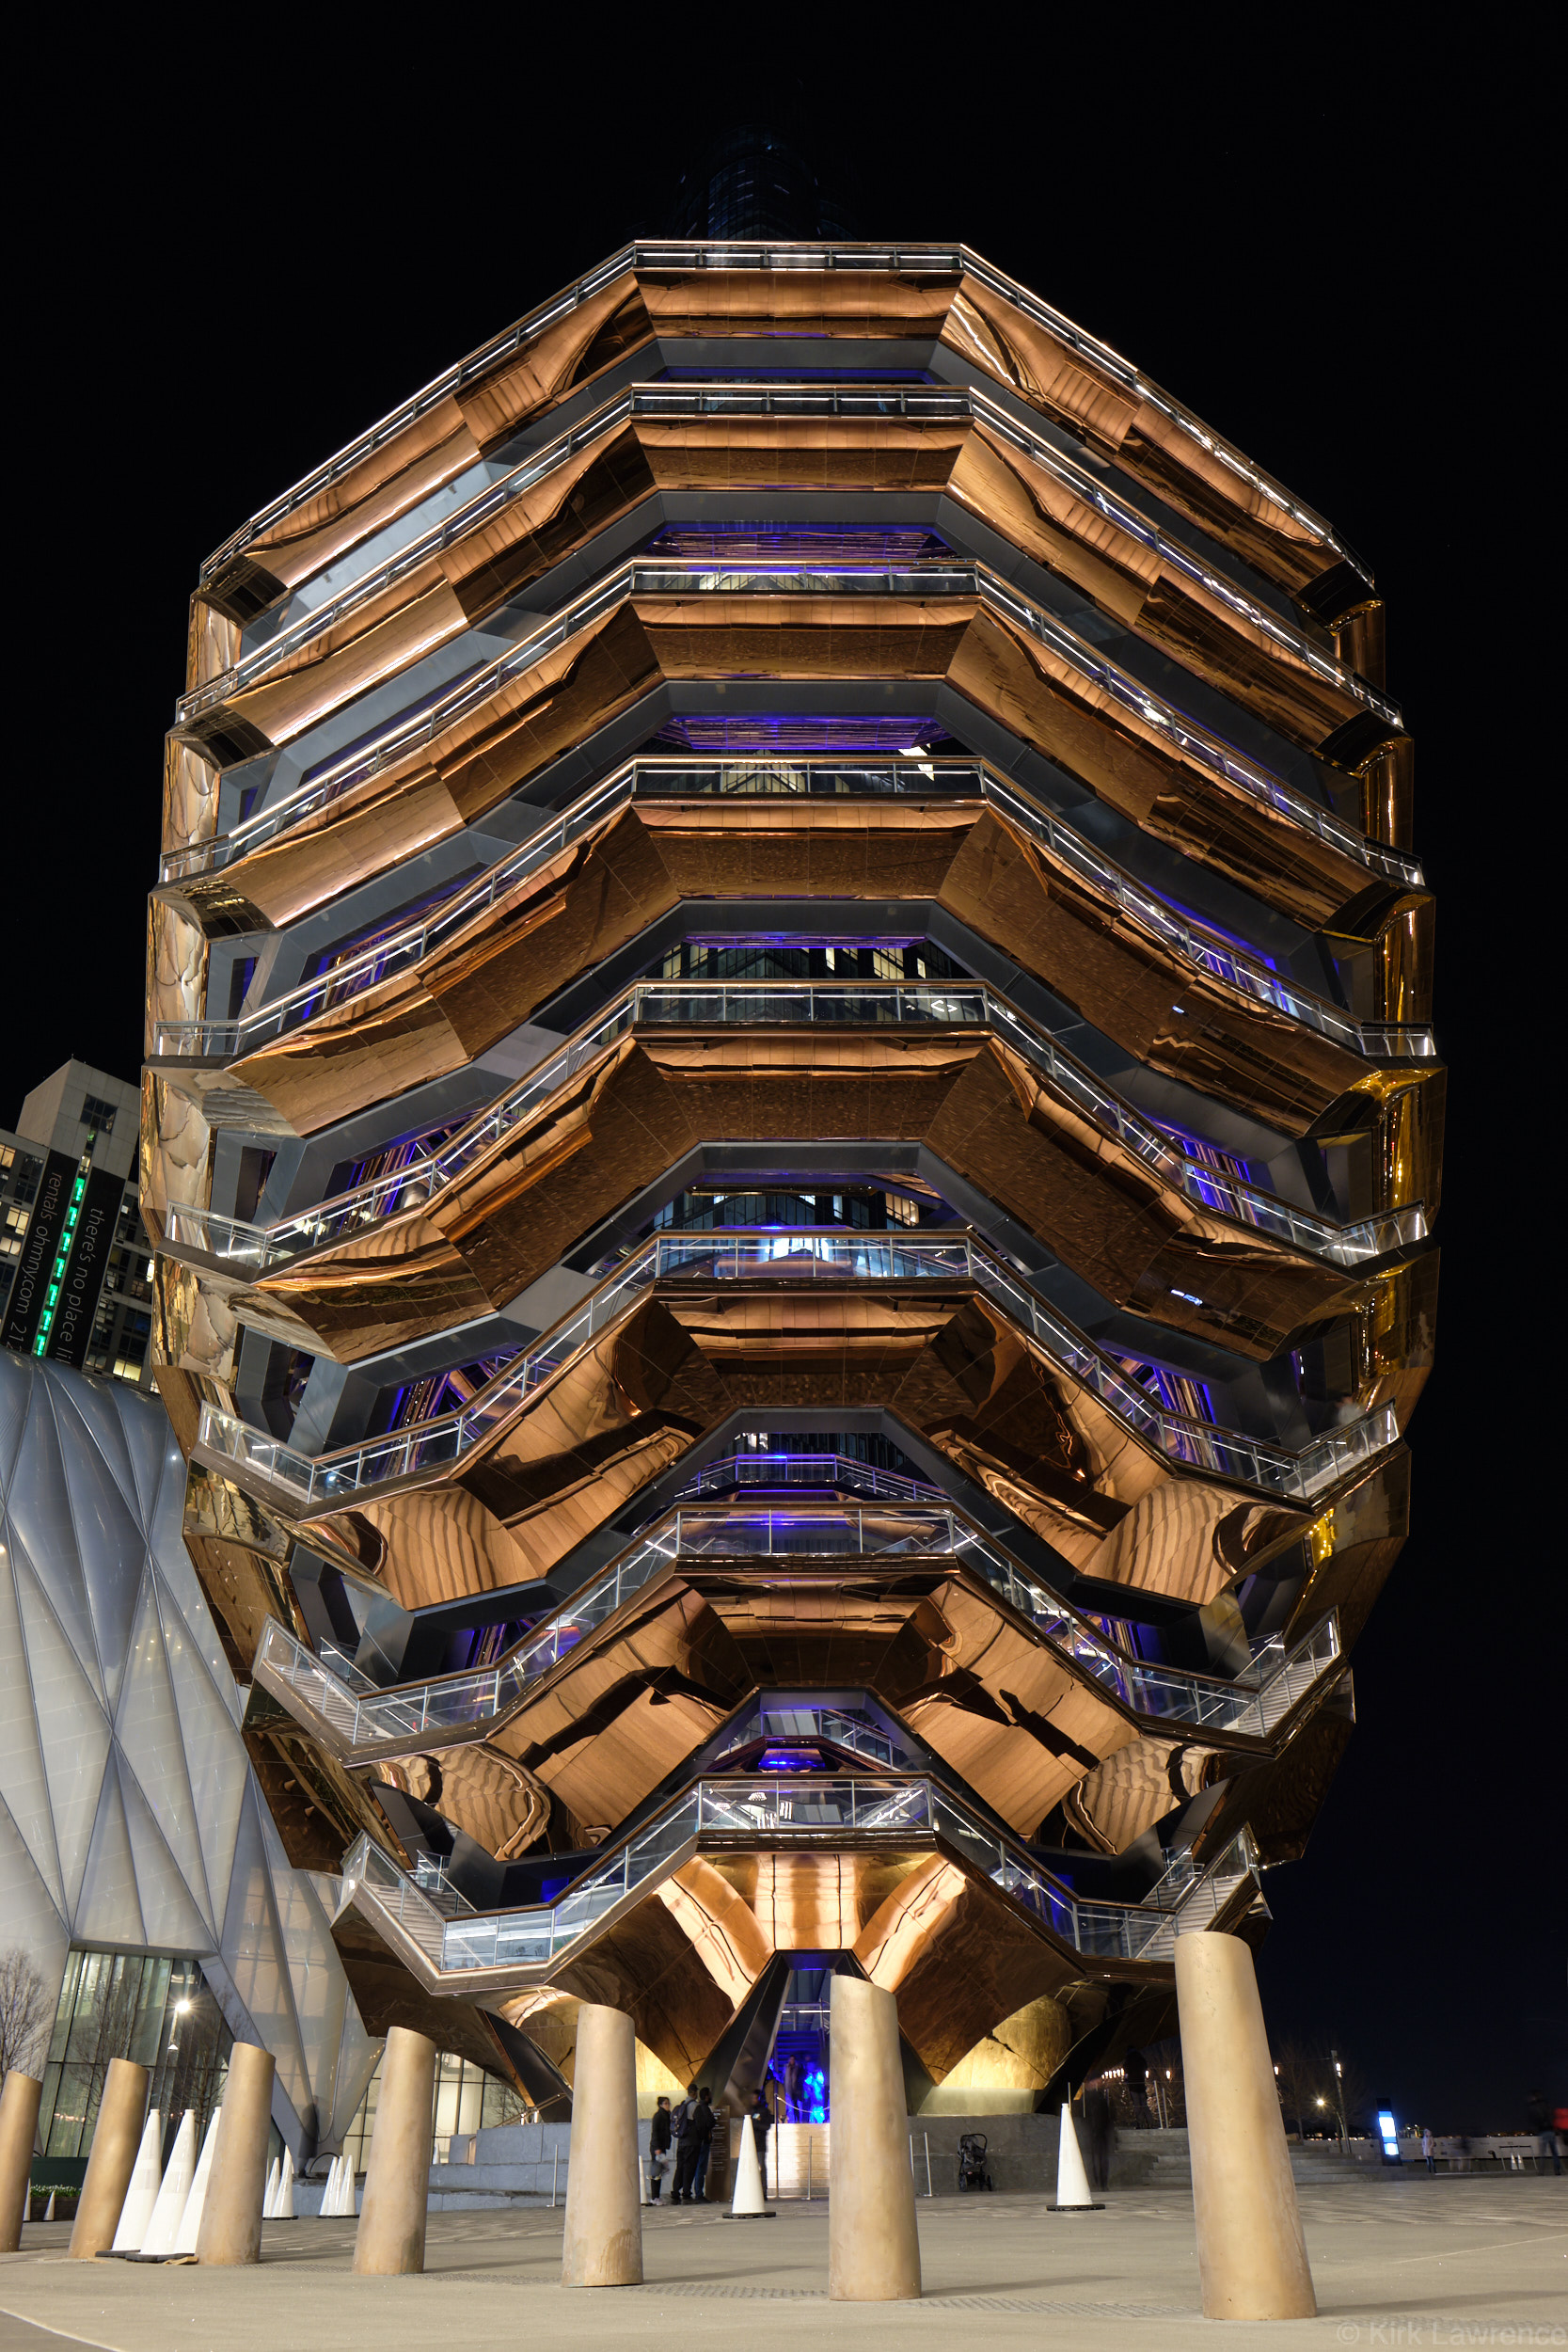 Hudson_Yards_Vessel_nighttime.jpg